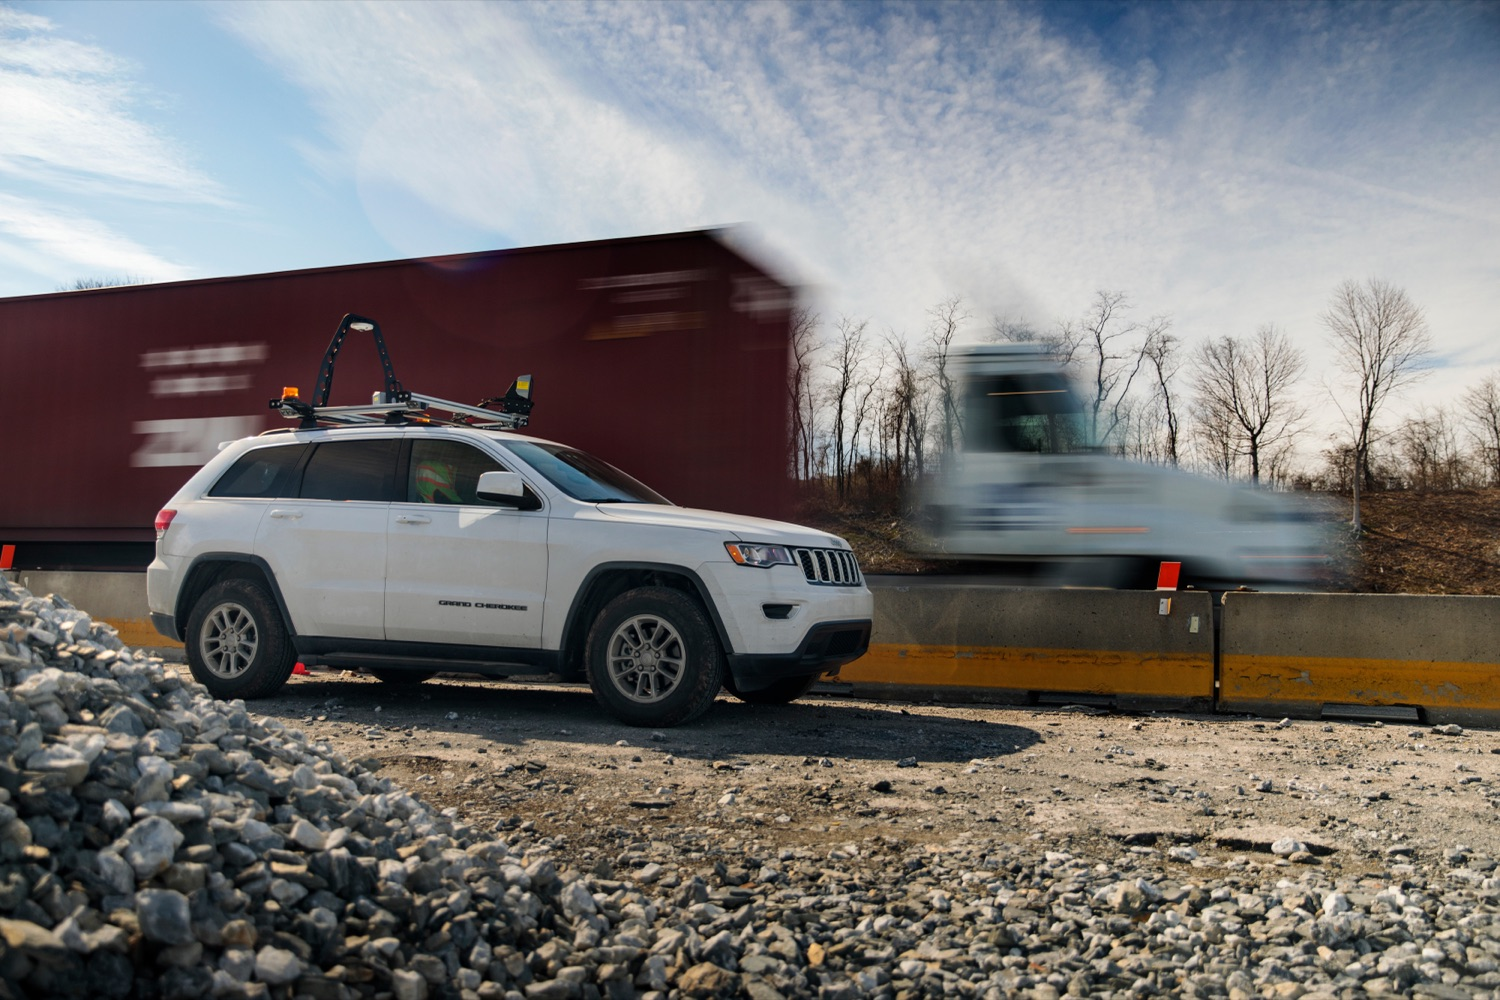 """<a href=""""https://filesource.wostreaming.net/commonwealthofpa/photo/17774_PennDOT_AWZSE_NK_007.JPG"""" target=""""_blank"""">⇣Download Photo<br></a>Pennsylvanias AWZSE program uses vehicle-mounted systems to detect and record motorists exceeding posted work zone speed limits by 11 miles per hour or more using electronic speed timing devices. AWZSE systems are only operational in active work zones where workers are present. Beginning today, registered owners will receive a warning letter for a first offense, a violation notice and $75 fine for a second offense, and a violation notice and $150 fine for third and subsequent offenses. These violations are civil penalties only; no points will be assessed to drivers licenses."""